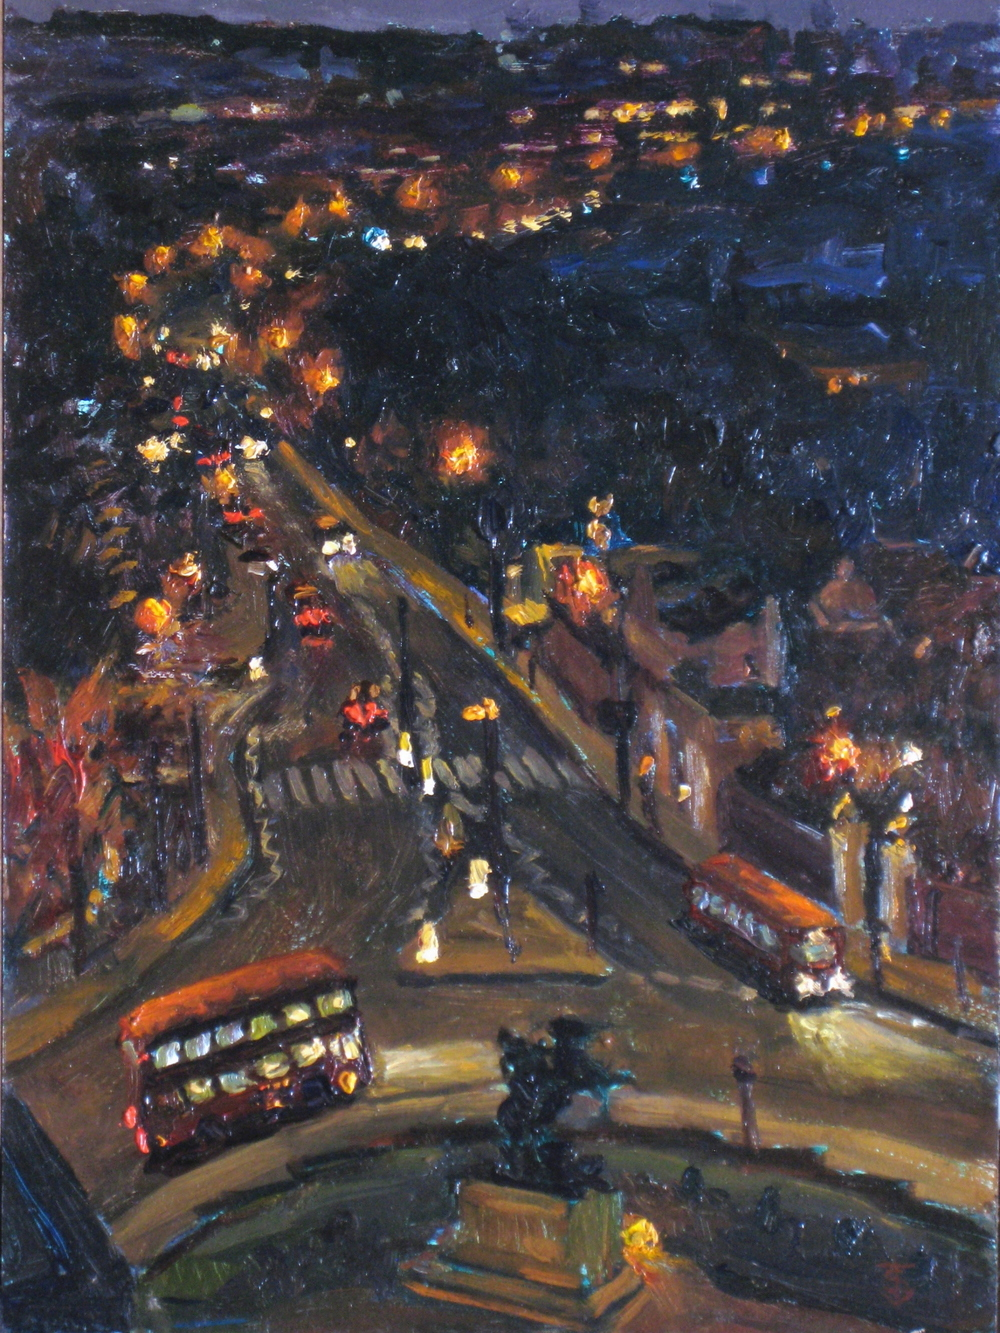 I traveled to London and Iceland with my Surreal Bounce colleague Robert Eringer, in search of the purity of the night sky,  and found creativity and madness.  I painted this painting looking out my window, Room 909, overlooking  St. John's Wood, London. I captured the Double Decker Buse in the round about, which unfortunately no longer exist. 